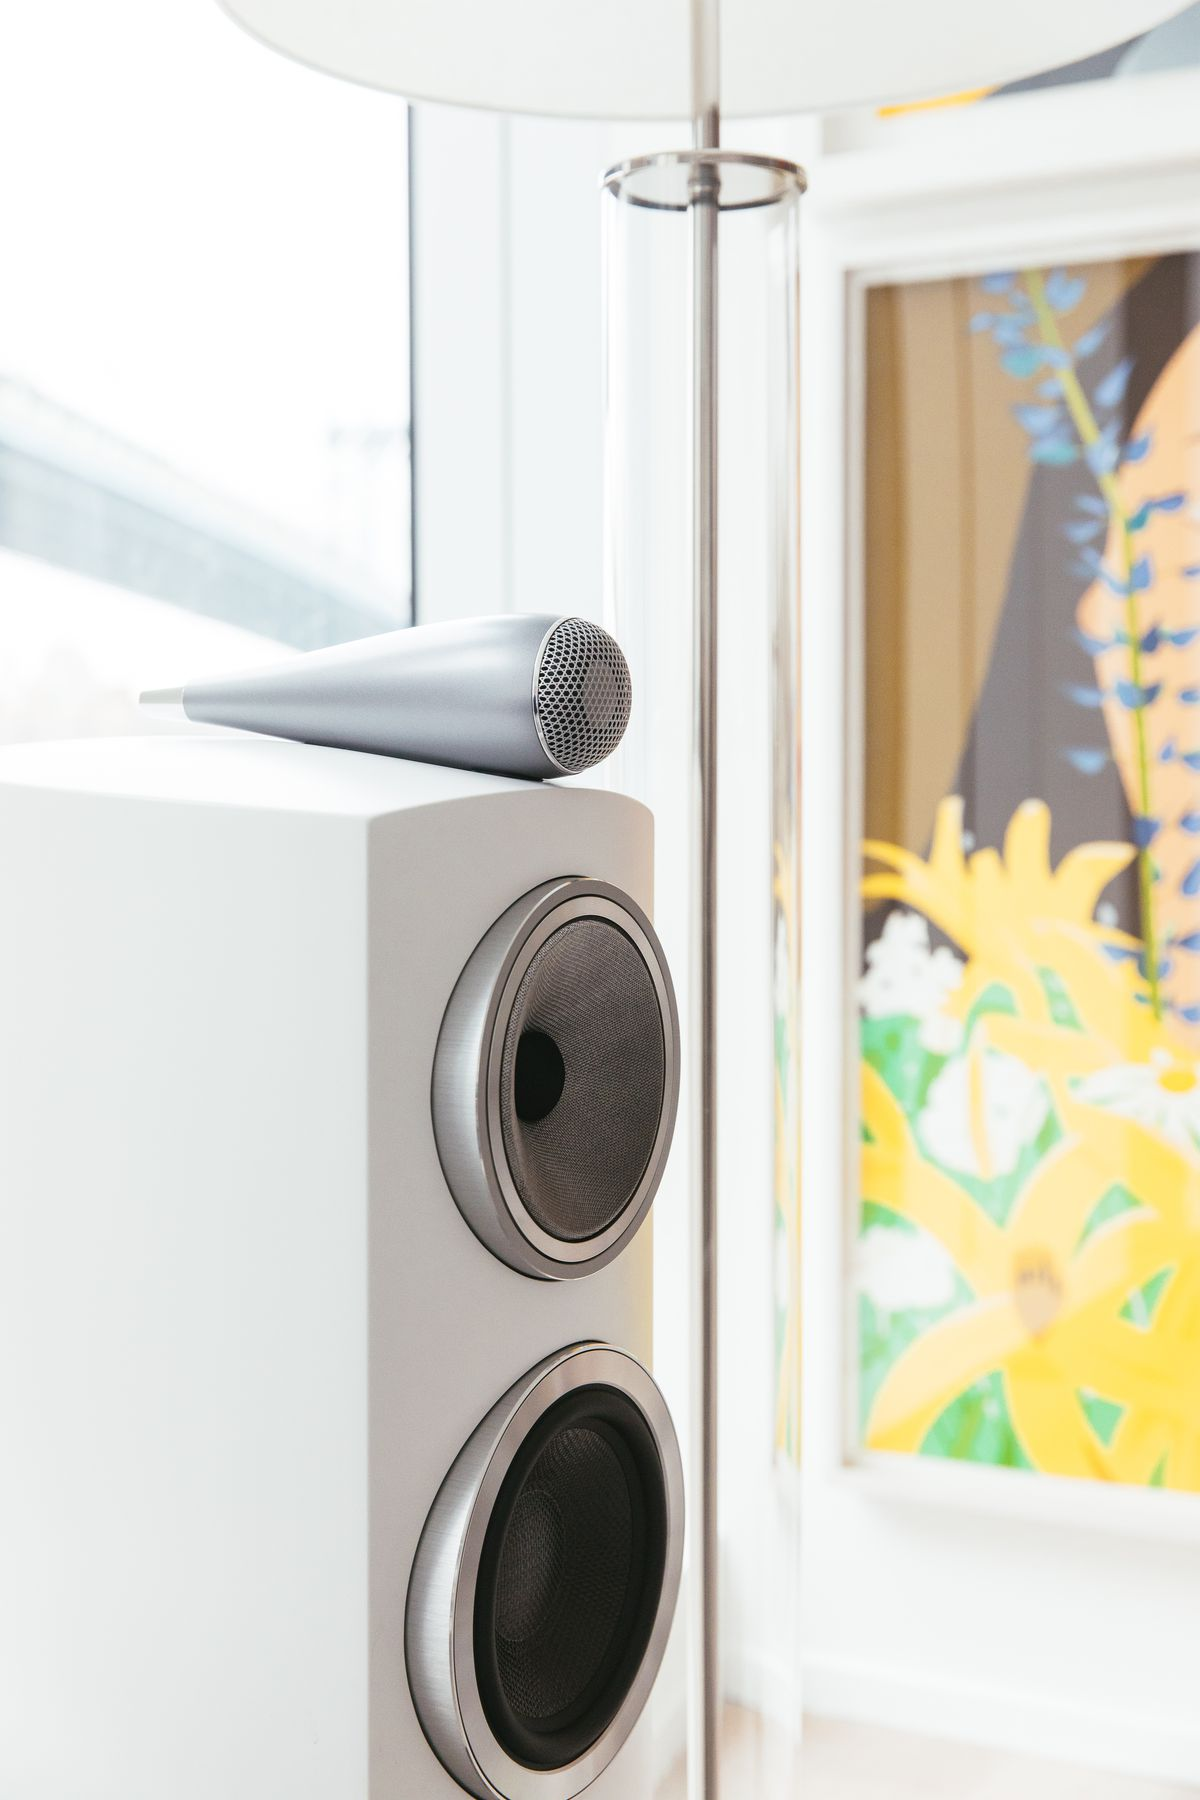 How to set up a smart home - Curbed